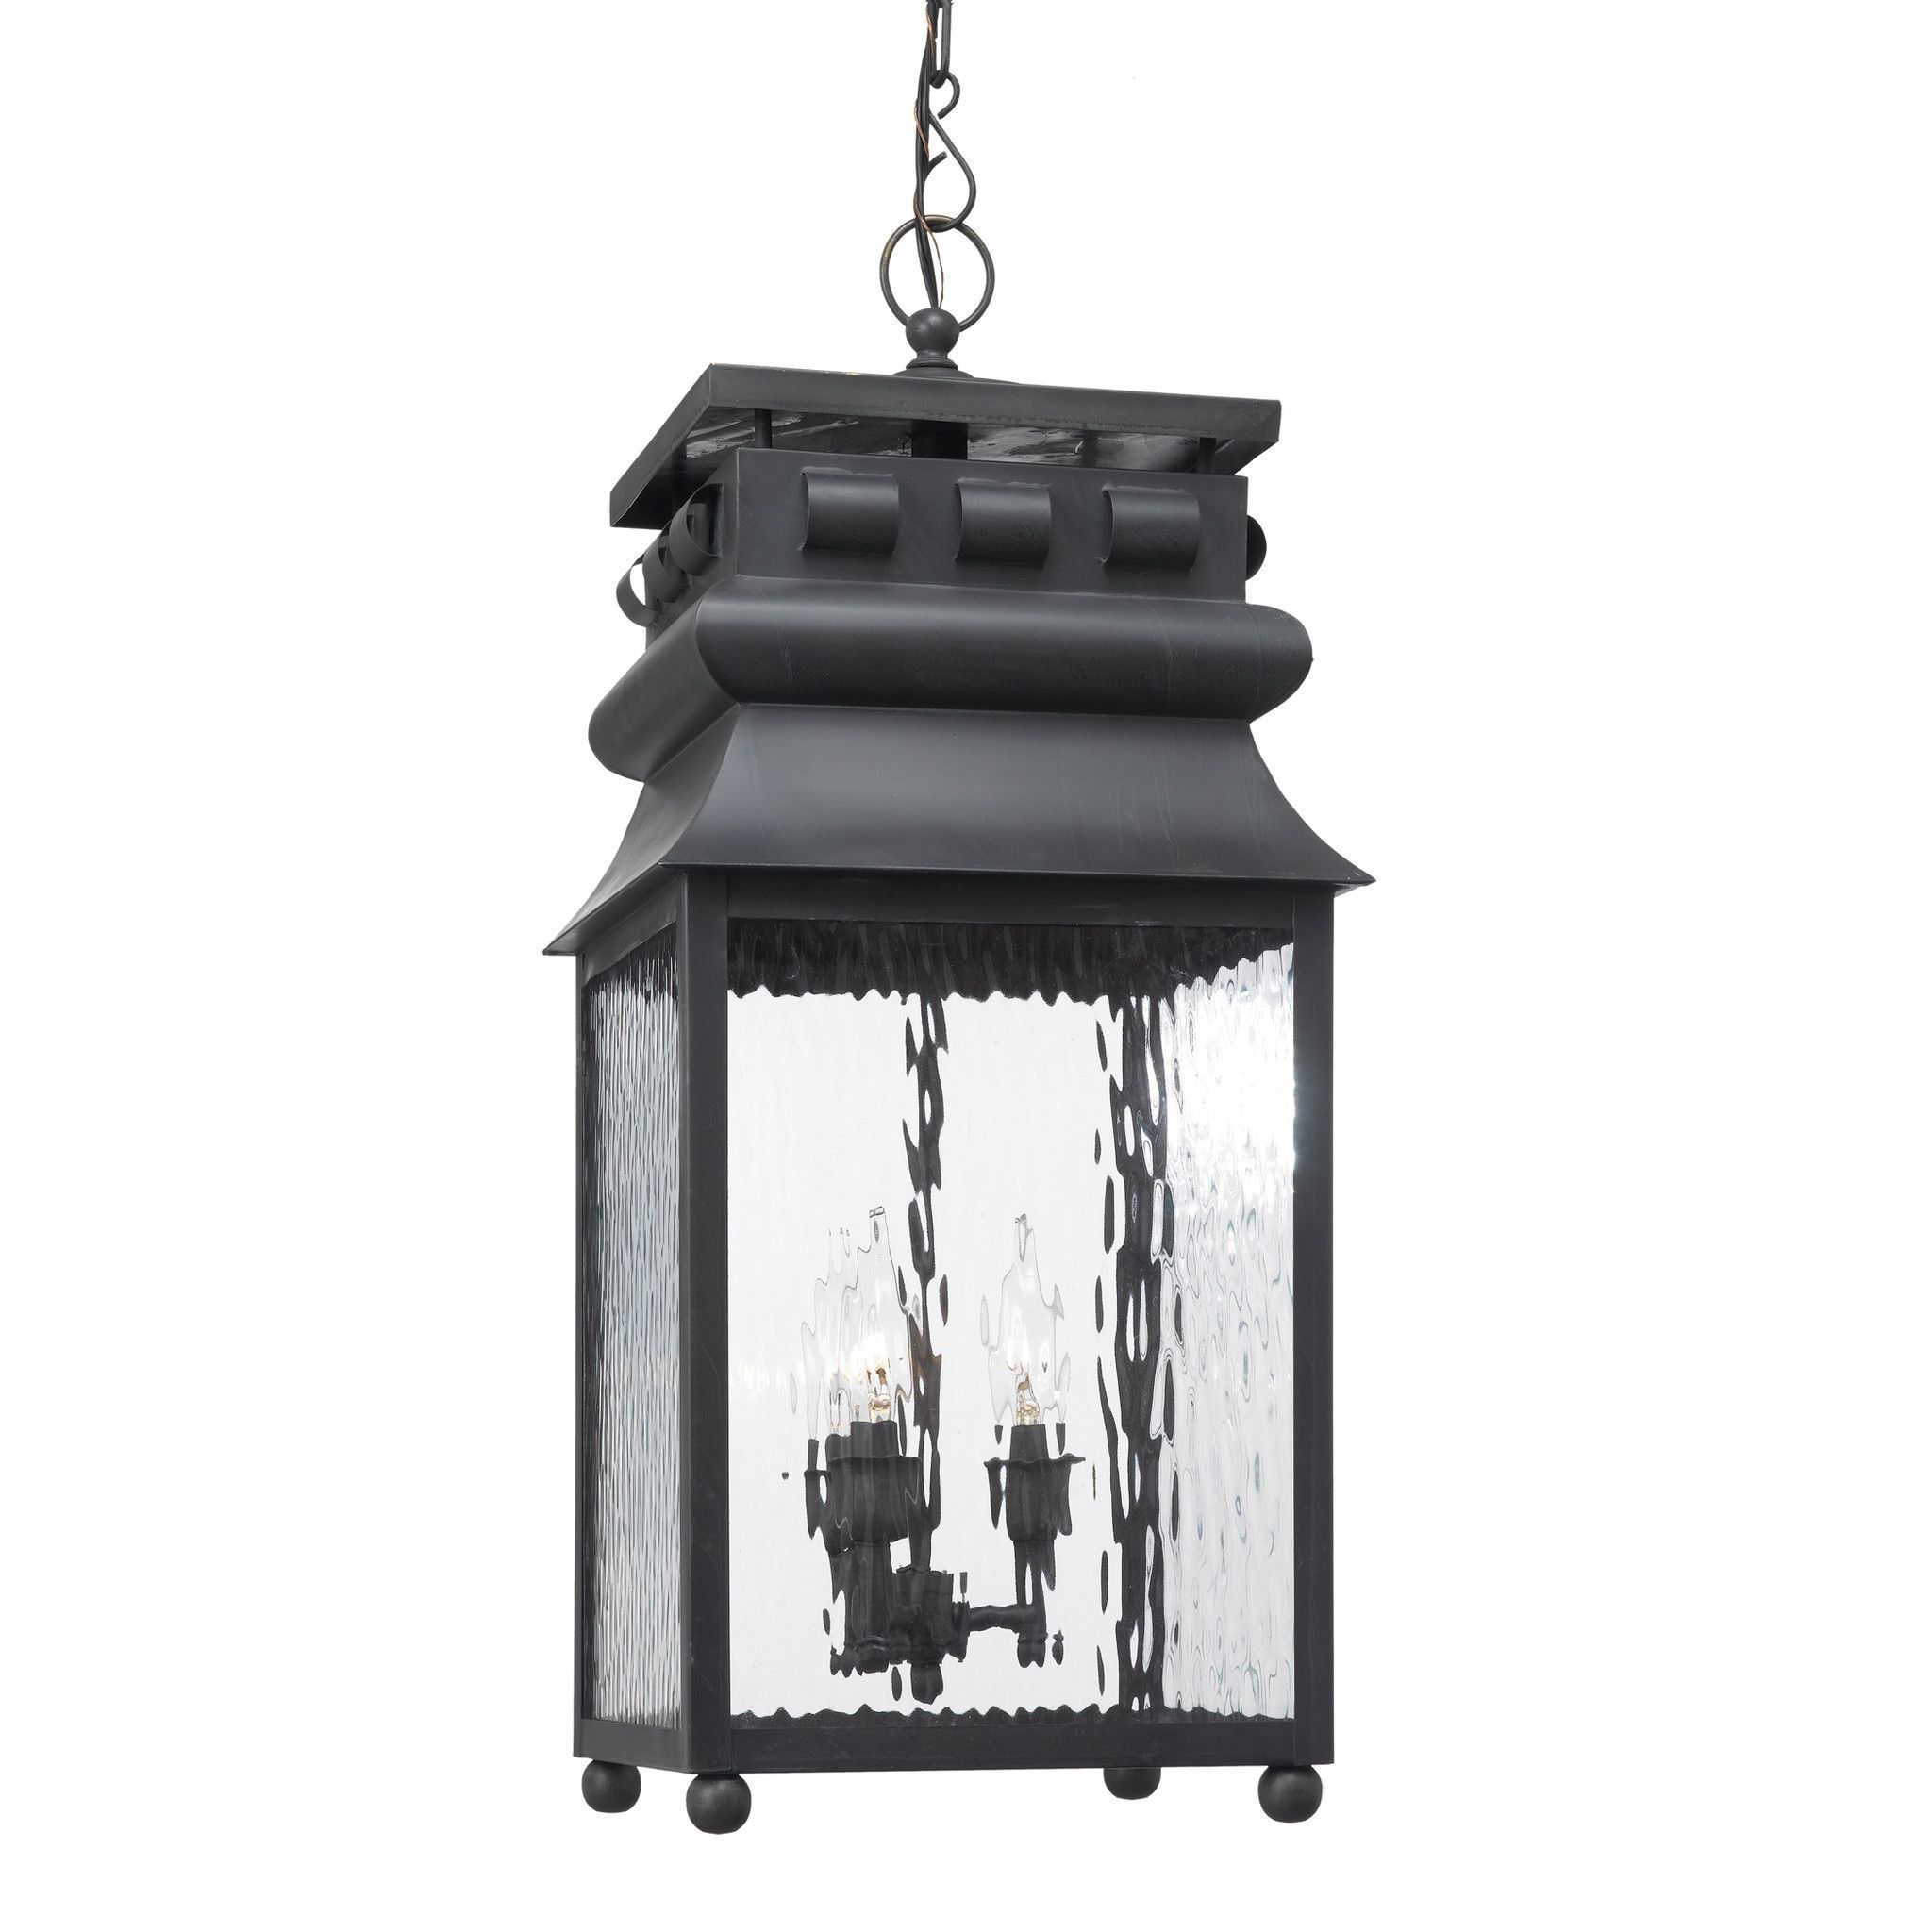 Elk Lighting Artistic 808 C Outdoor Hanging Lantern Lancaster